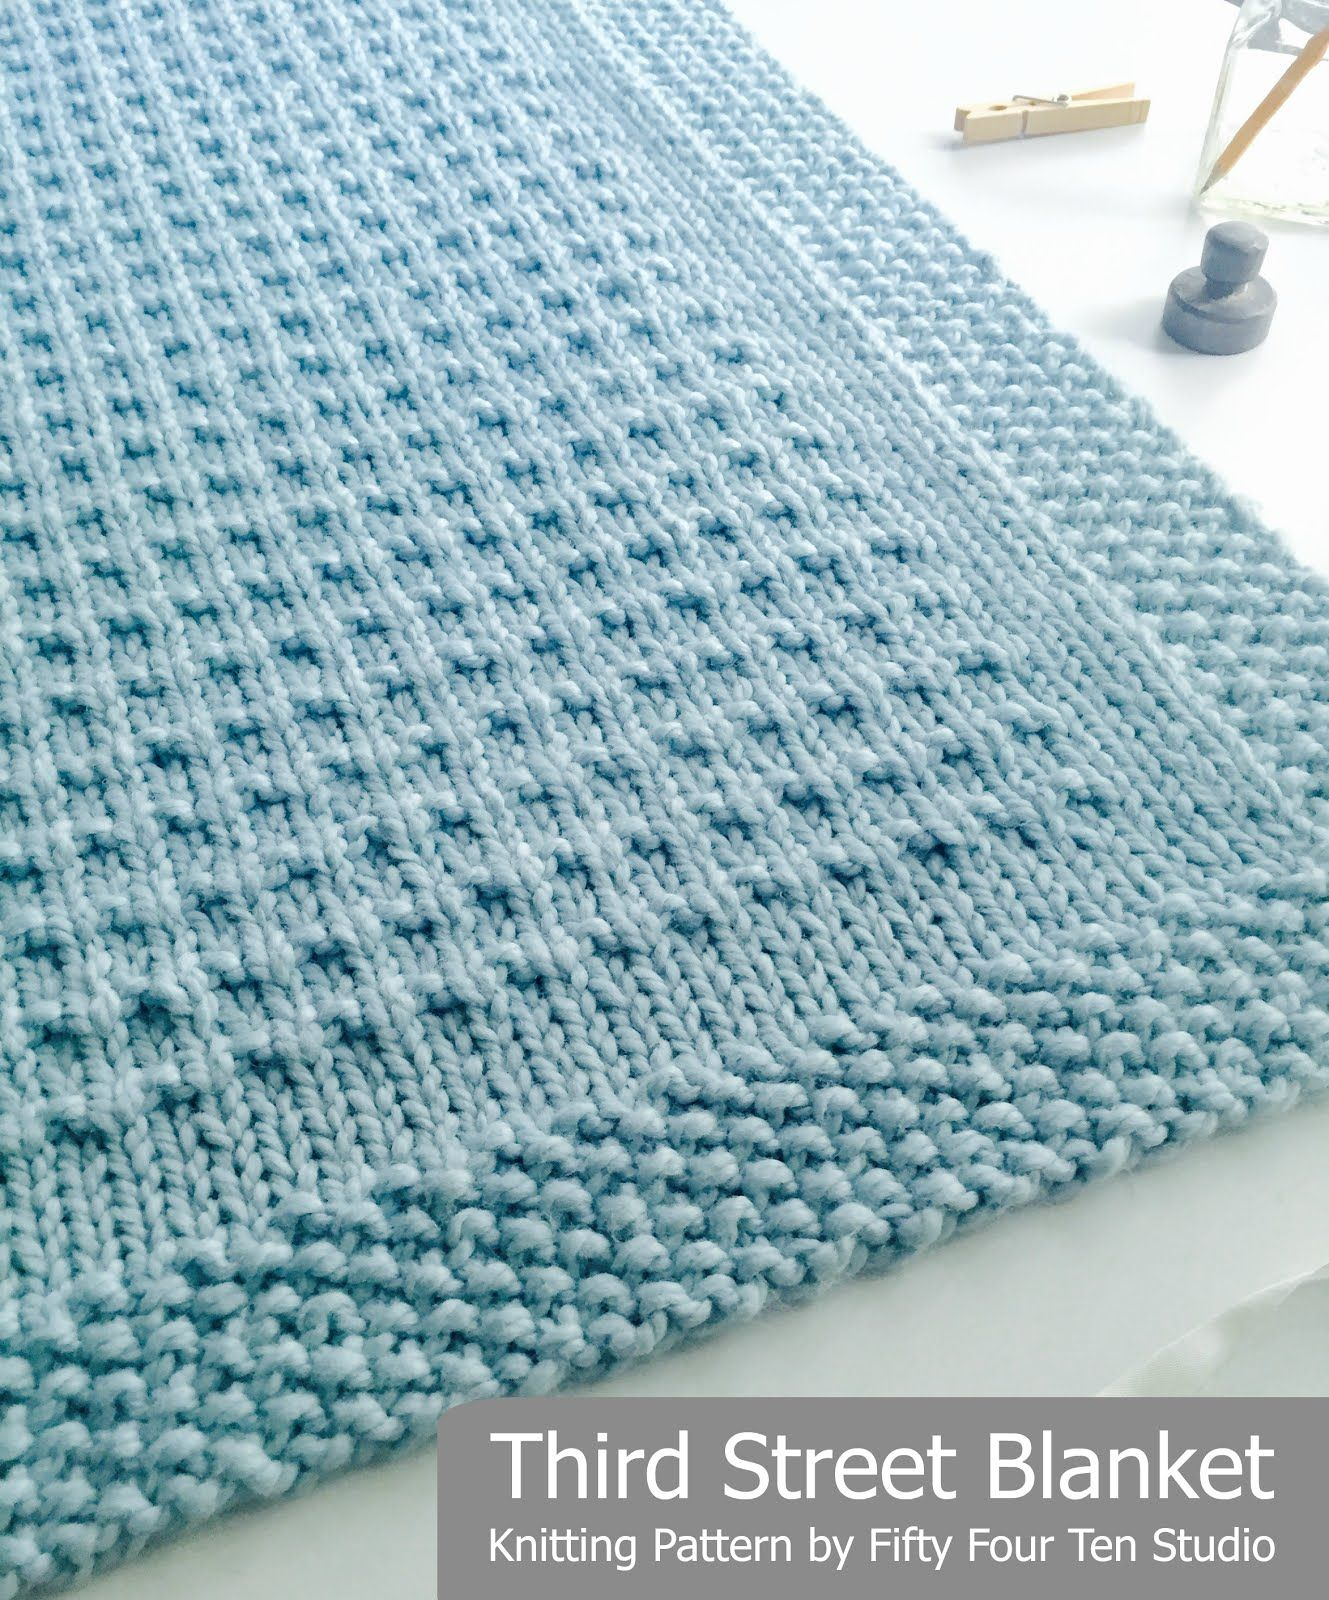 Knitting Stitches For Bulky Yarn : Third Street Blanket knitting pattern by Fifty Four Ten Studio. Knit with sup...